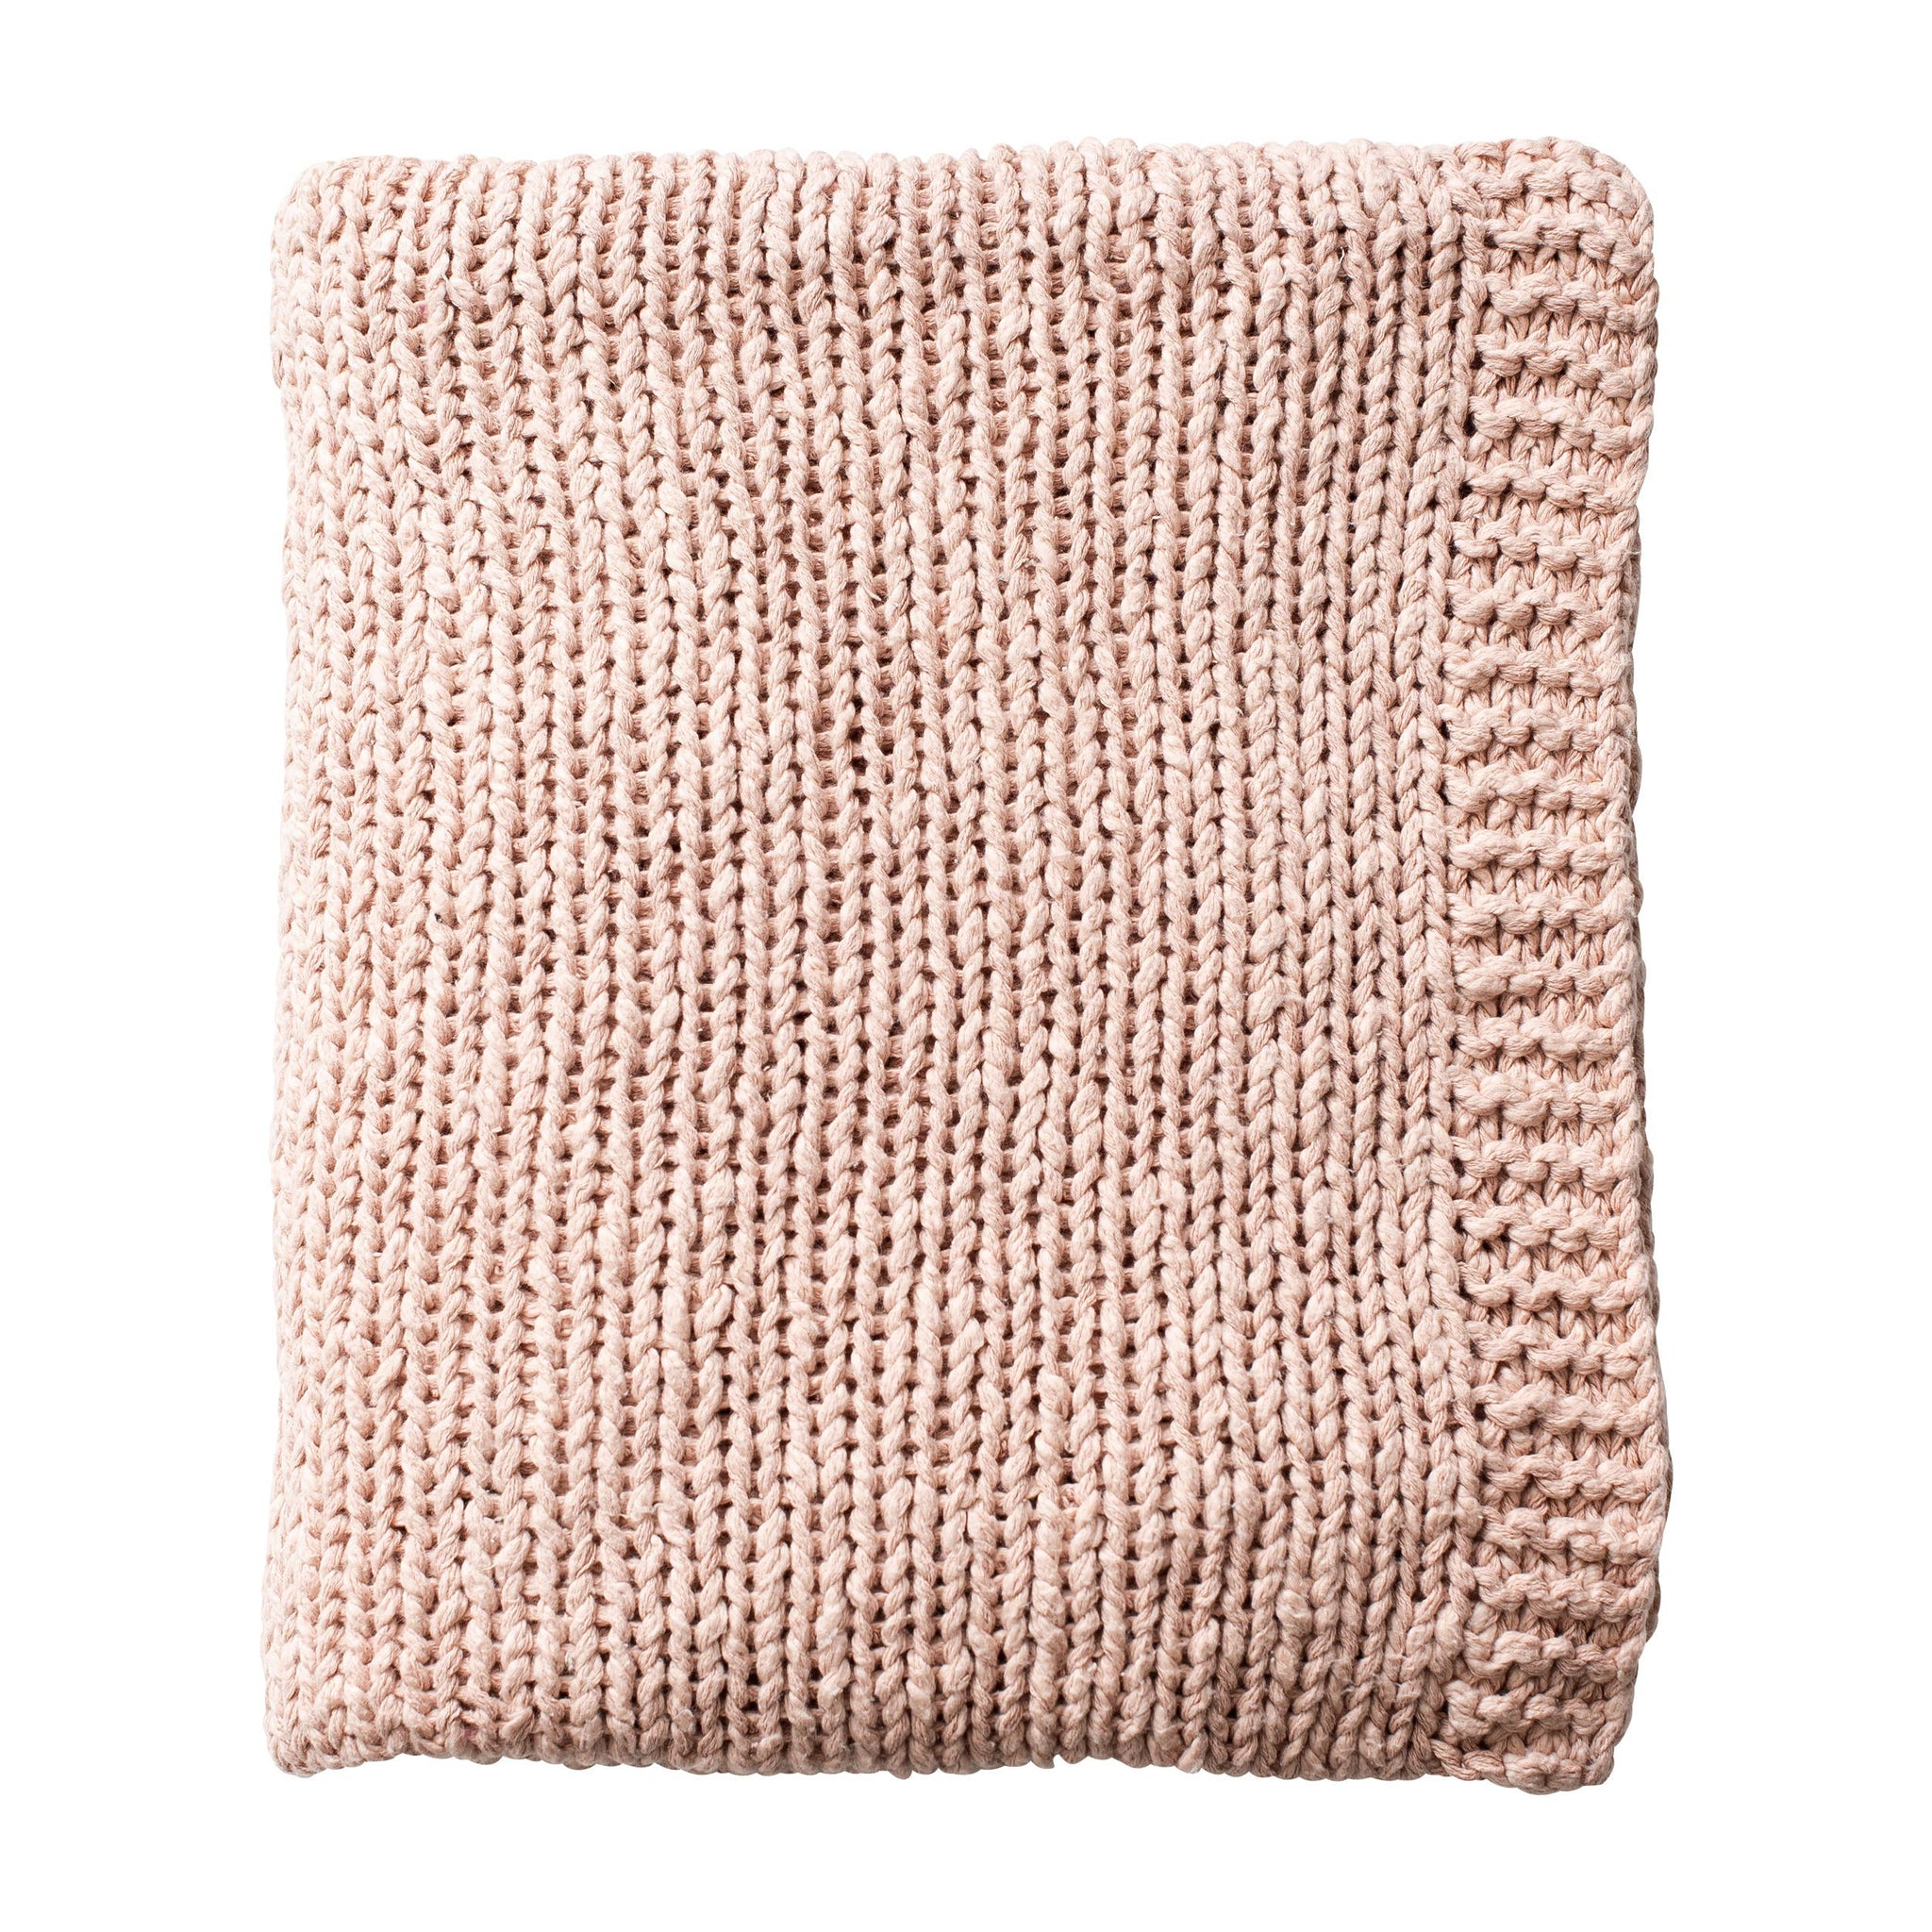 Zestt - Organic Cotton Slub Knit Throw